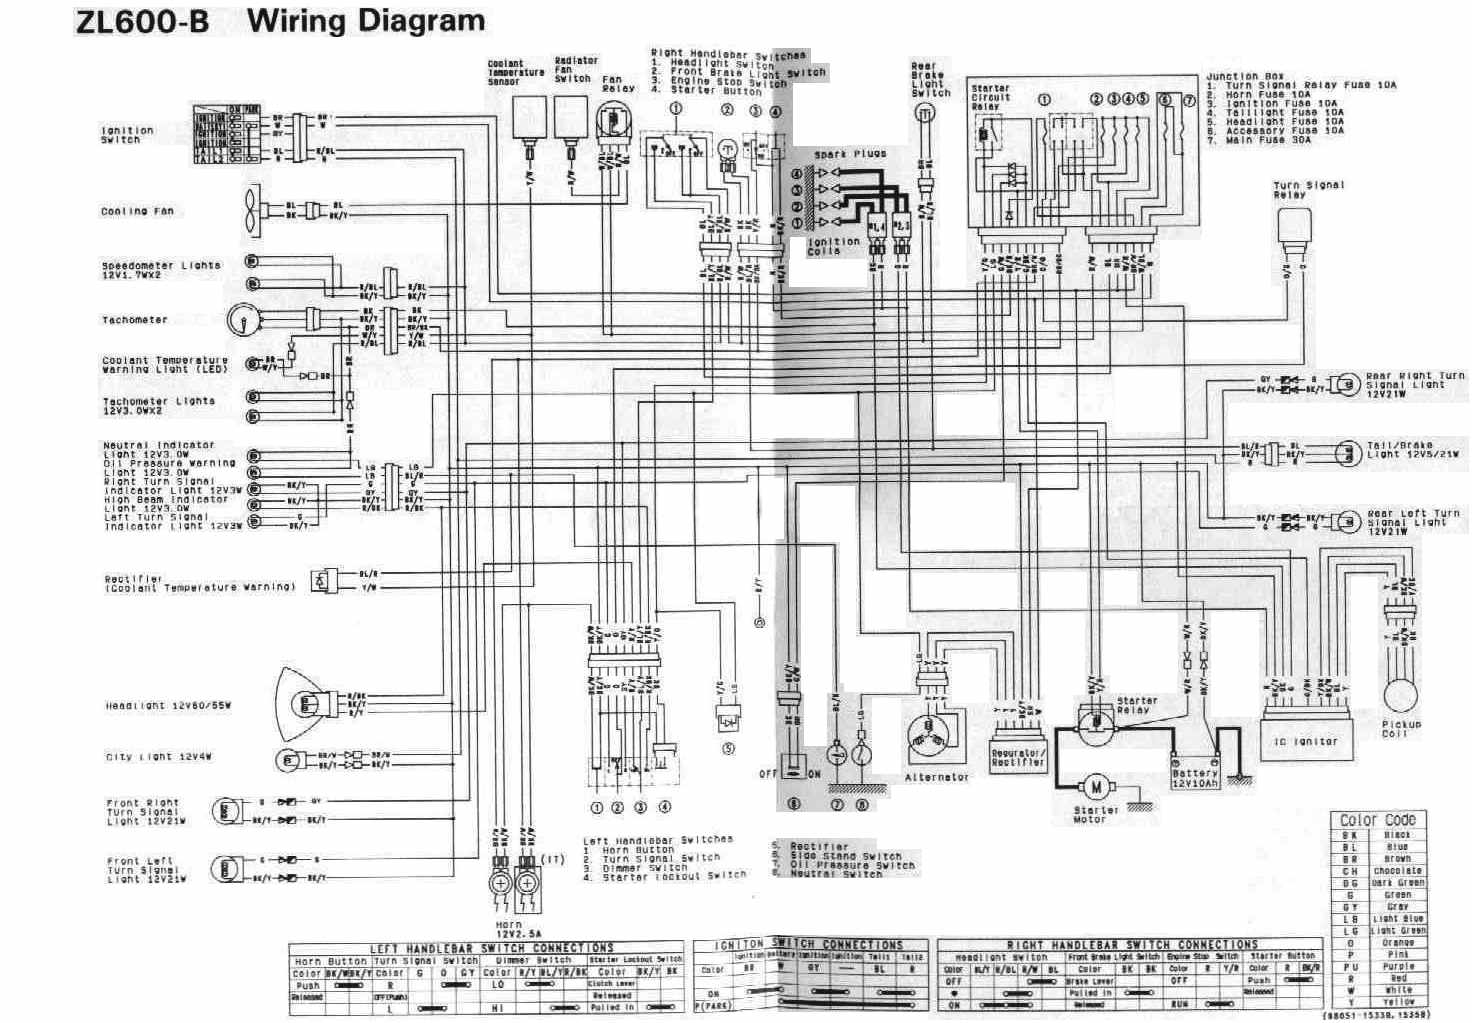 Kz440 Wiring Diagram from 3.bp.blogspot.com